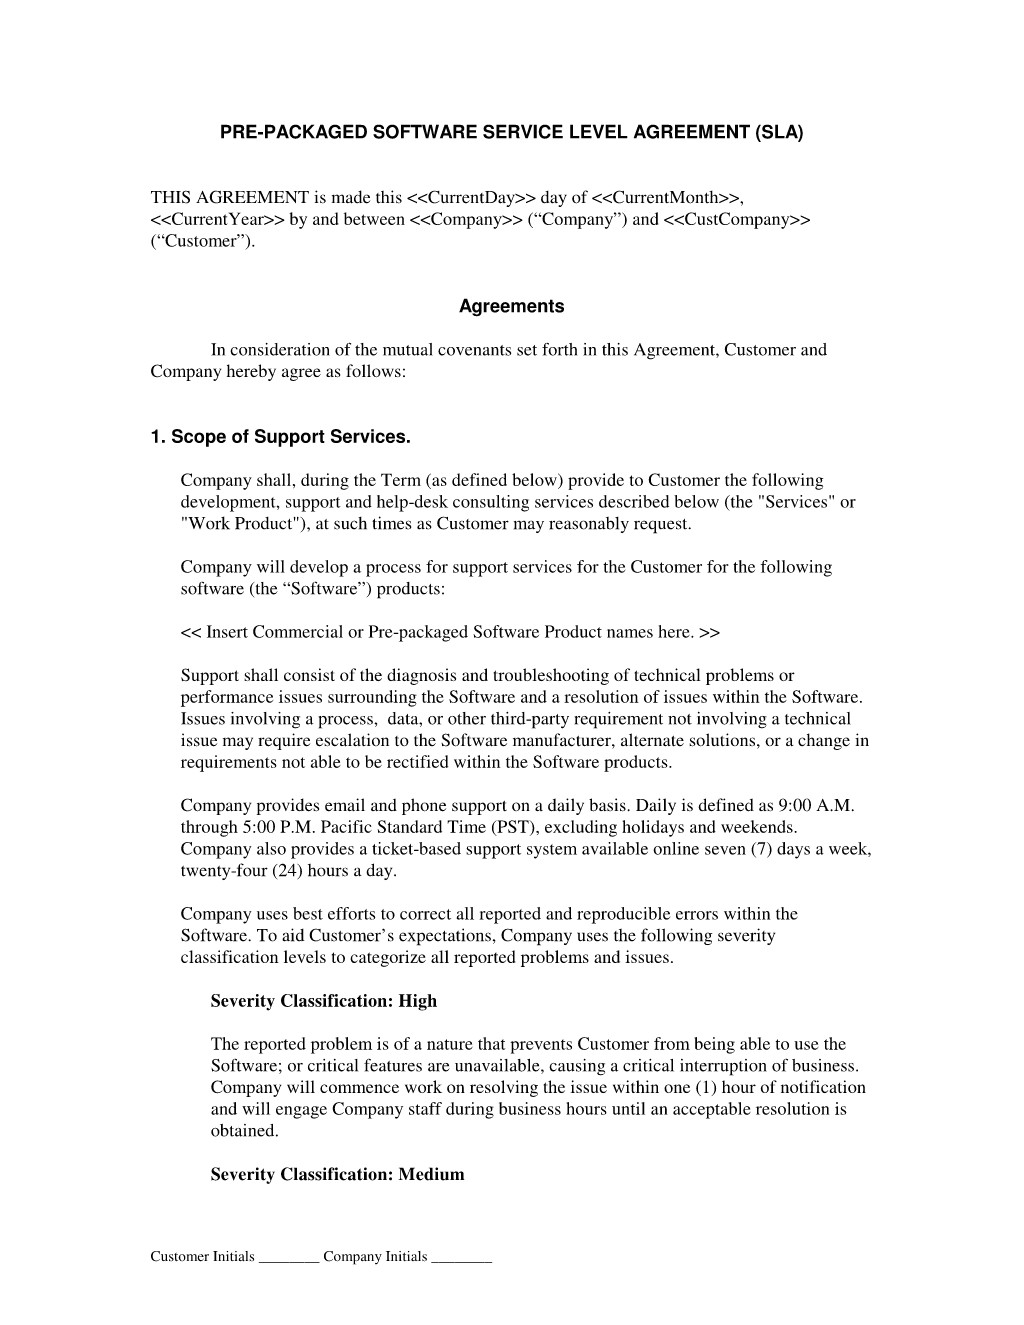 25065 software as a service agreement